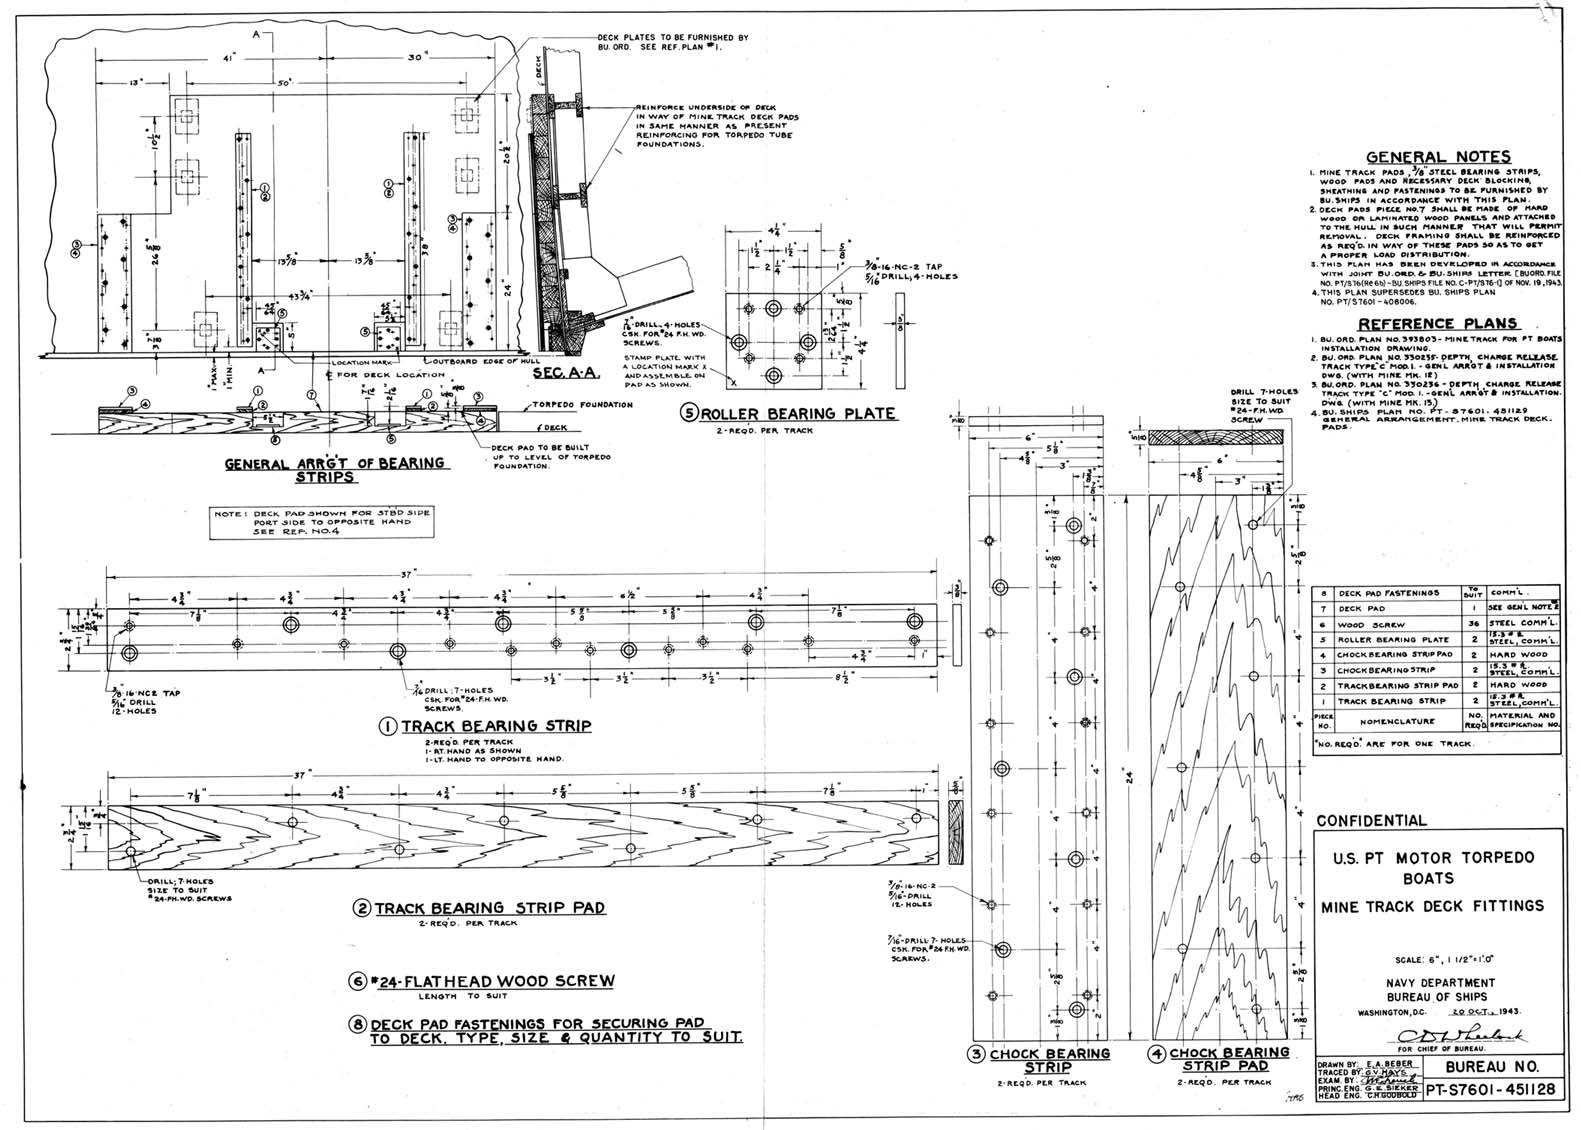 Elco Pt Boat Plans Here Boat Builder Plan